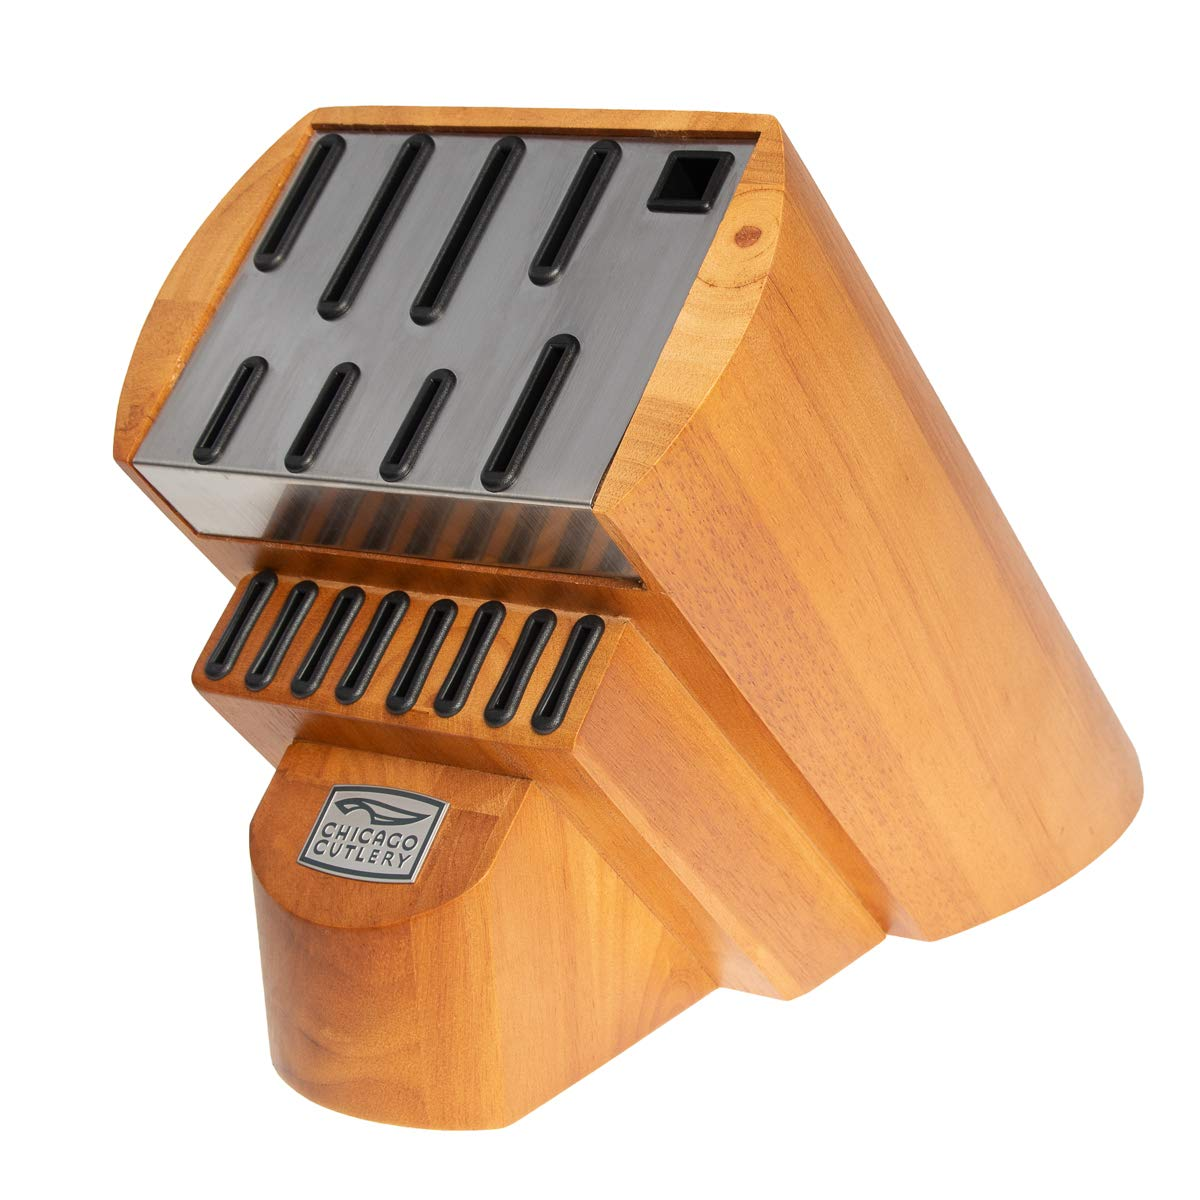 Chicago Cutlery Knife Block Without Knives 17 Slot Cutlery Organizer